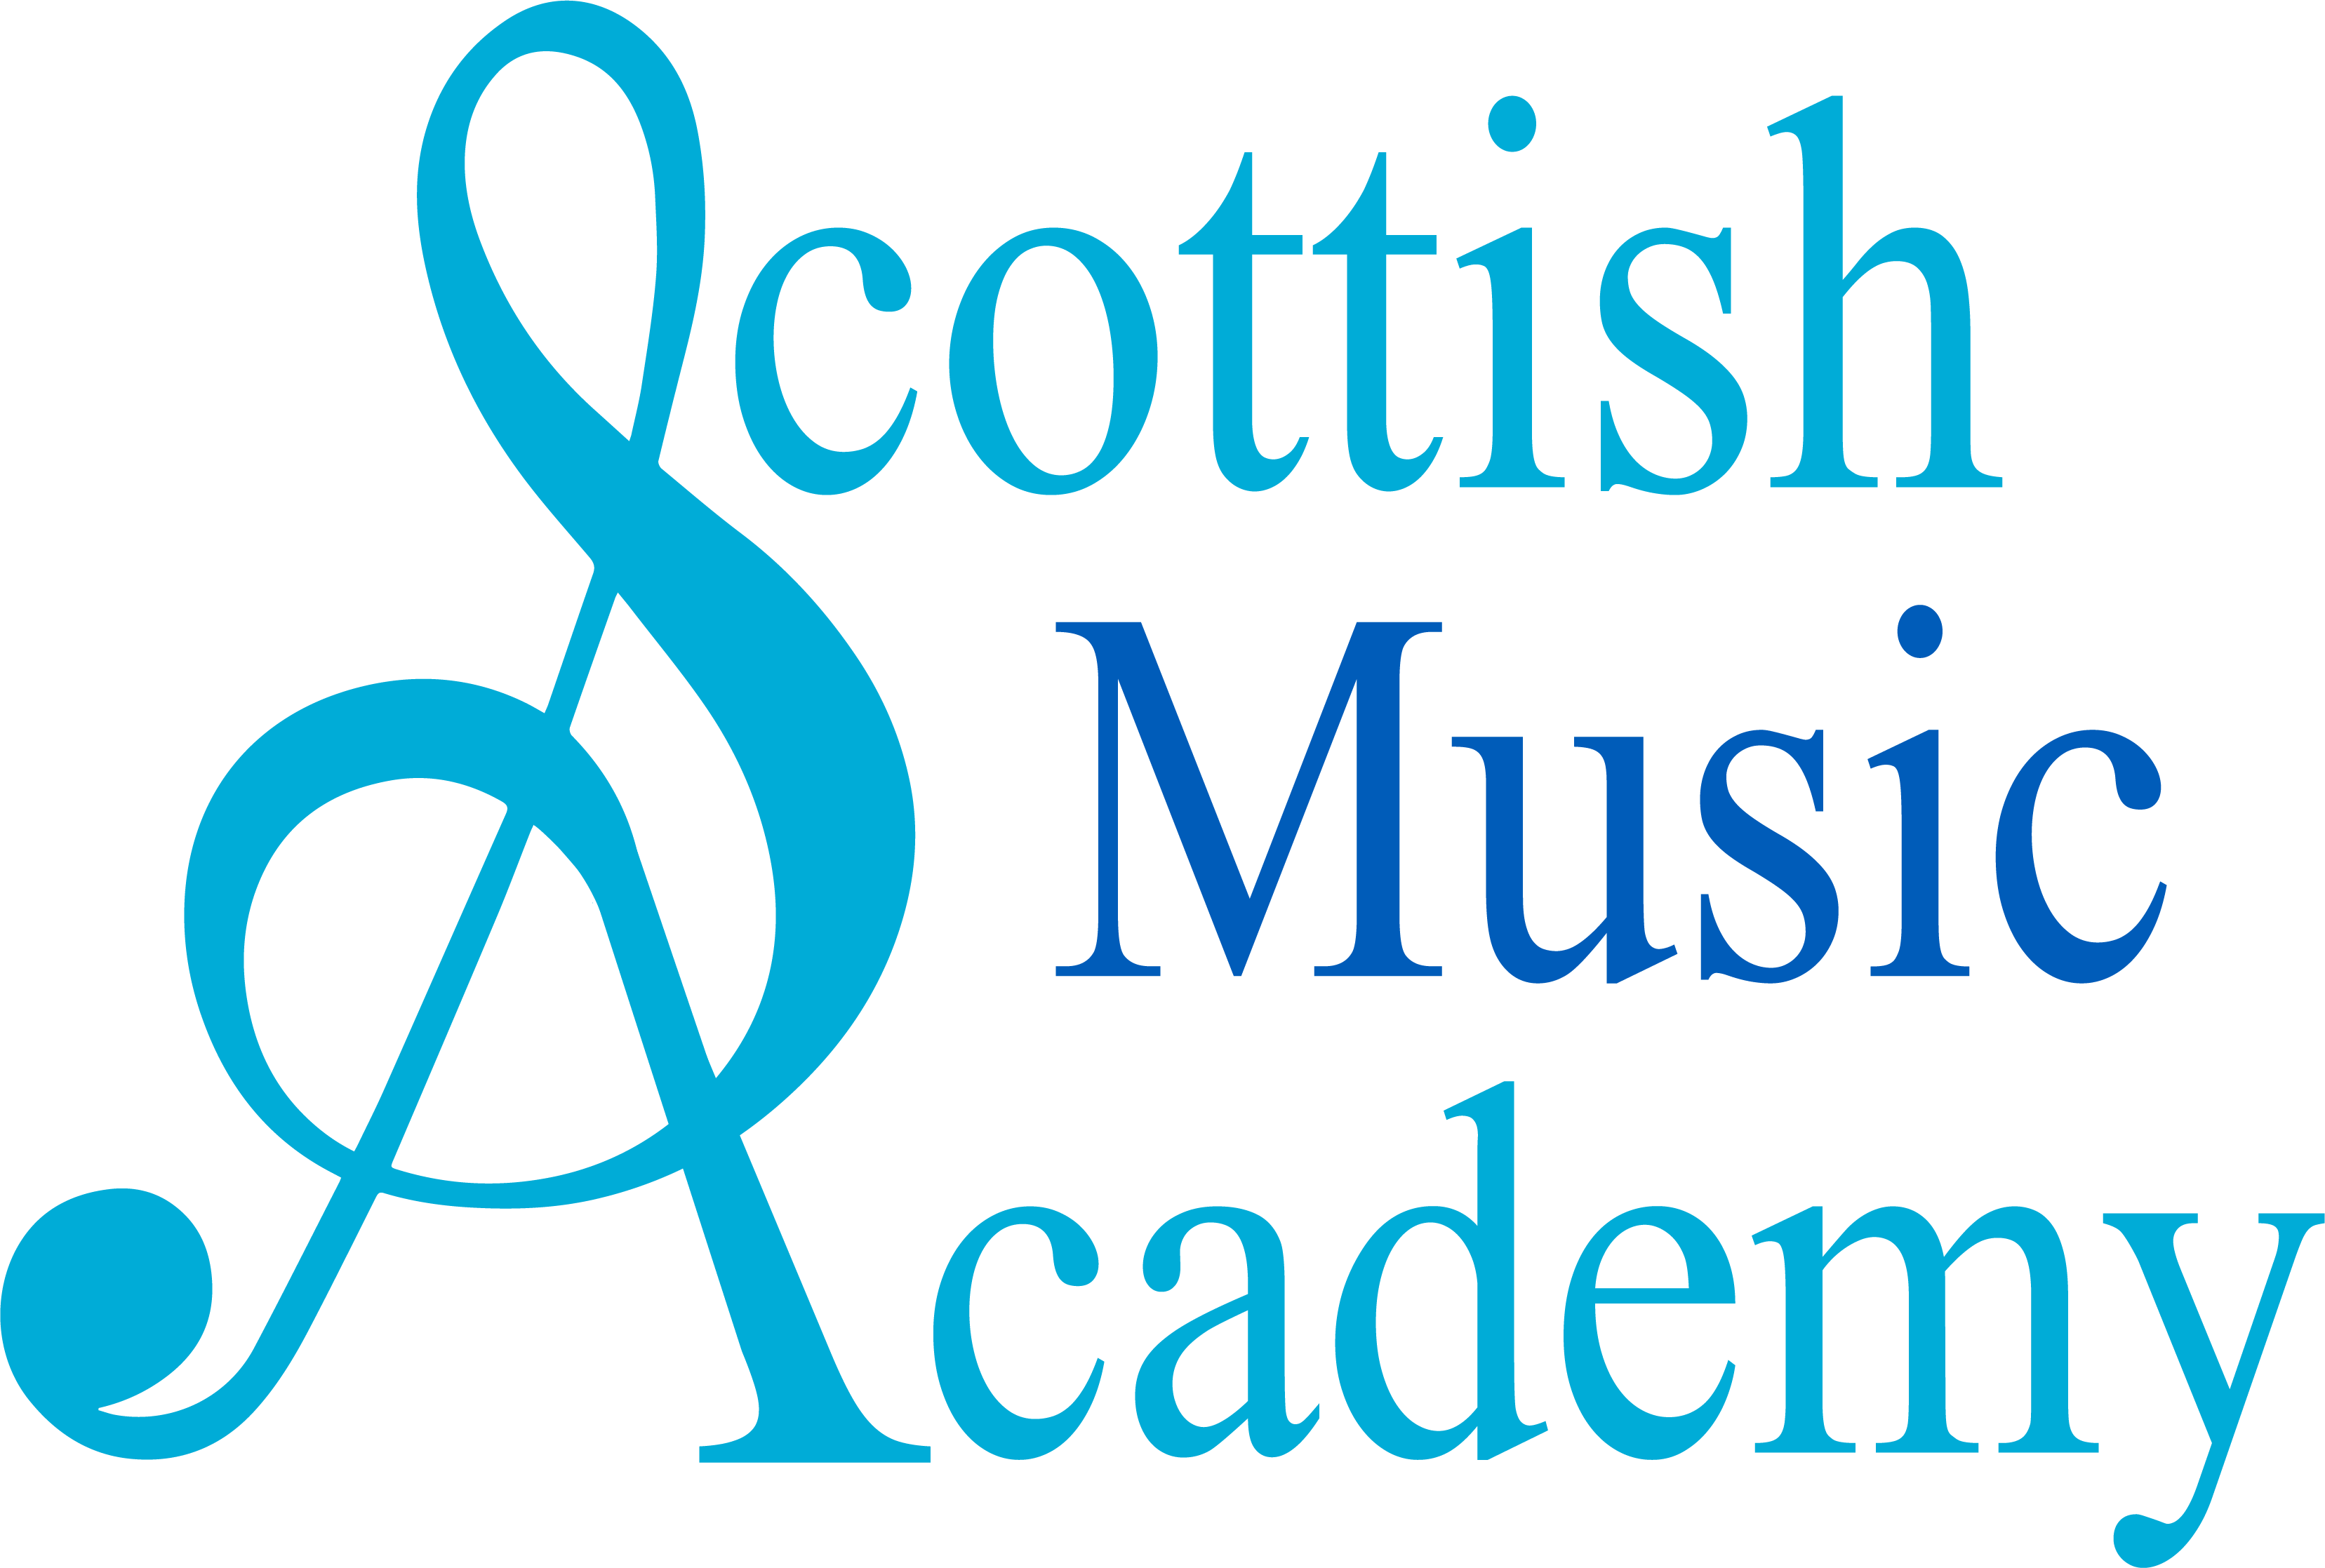 The Scottish Music Academy